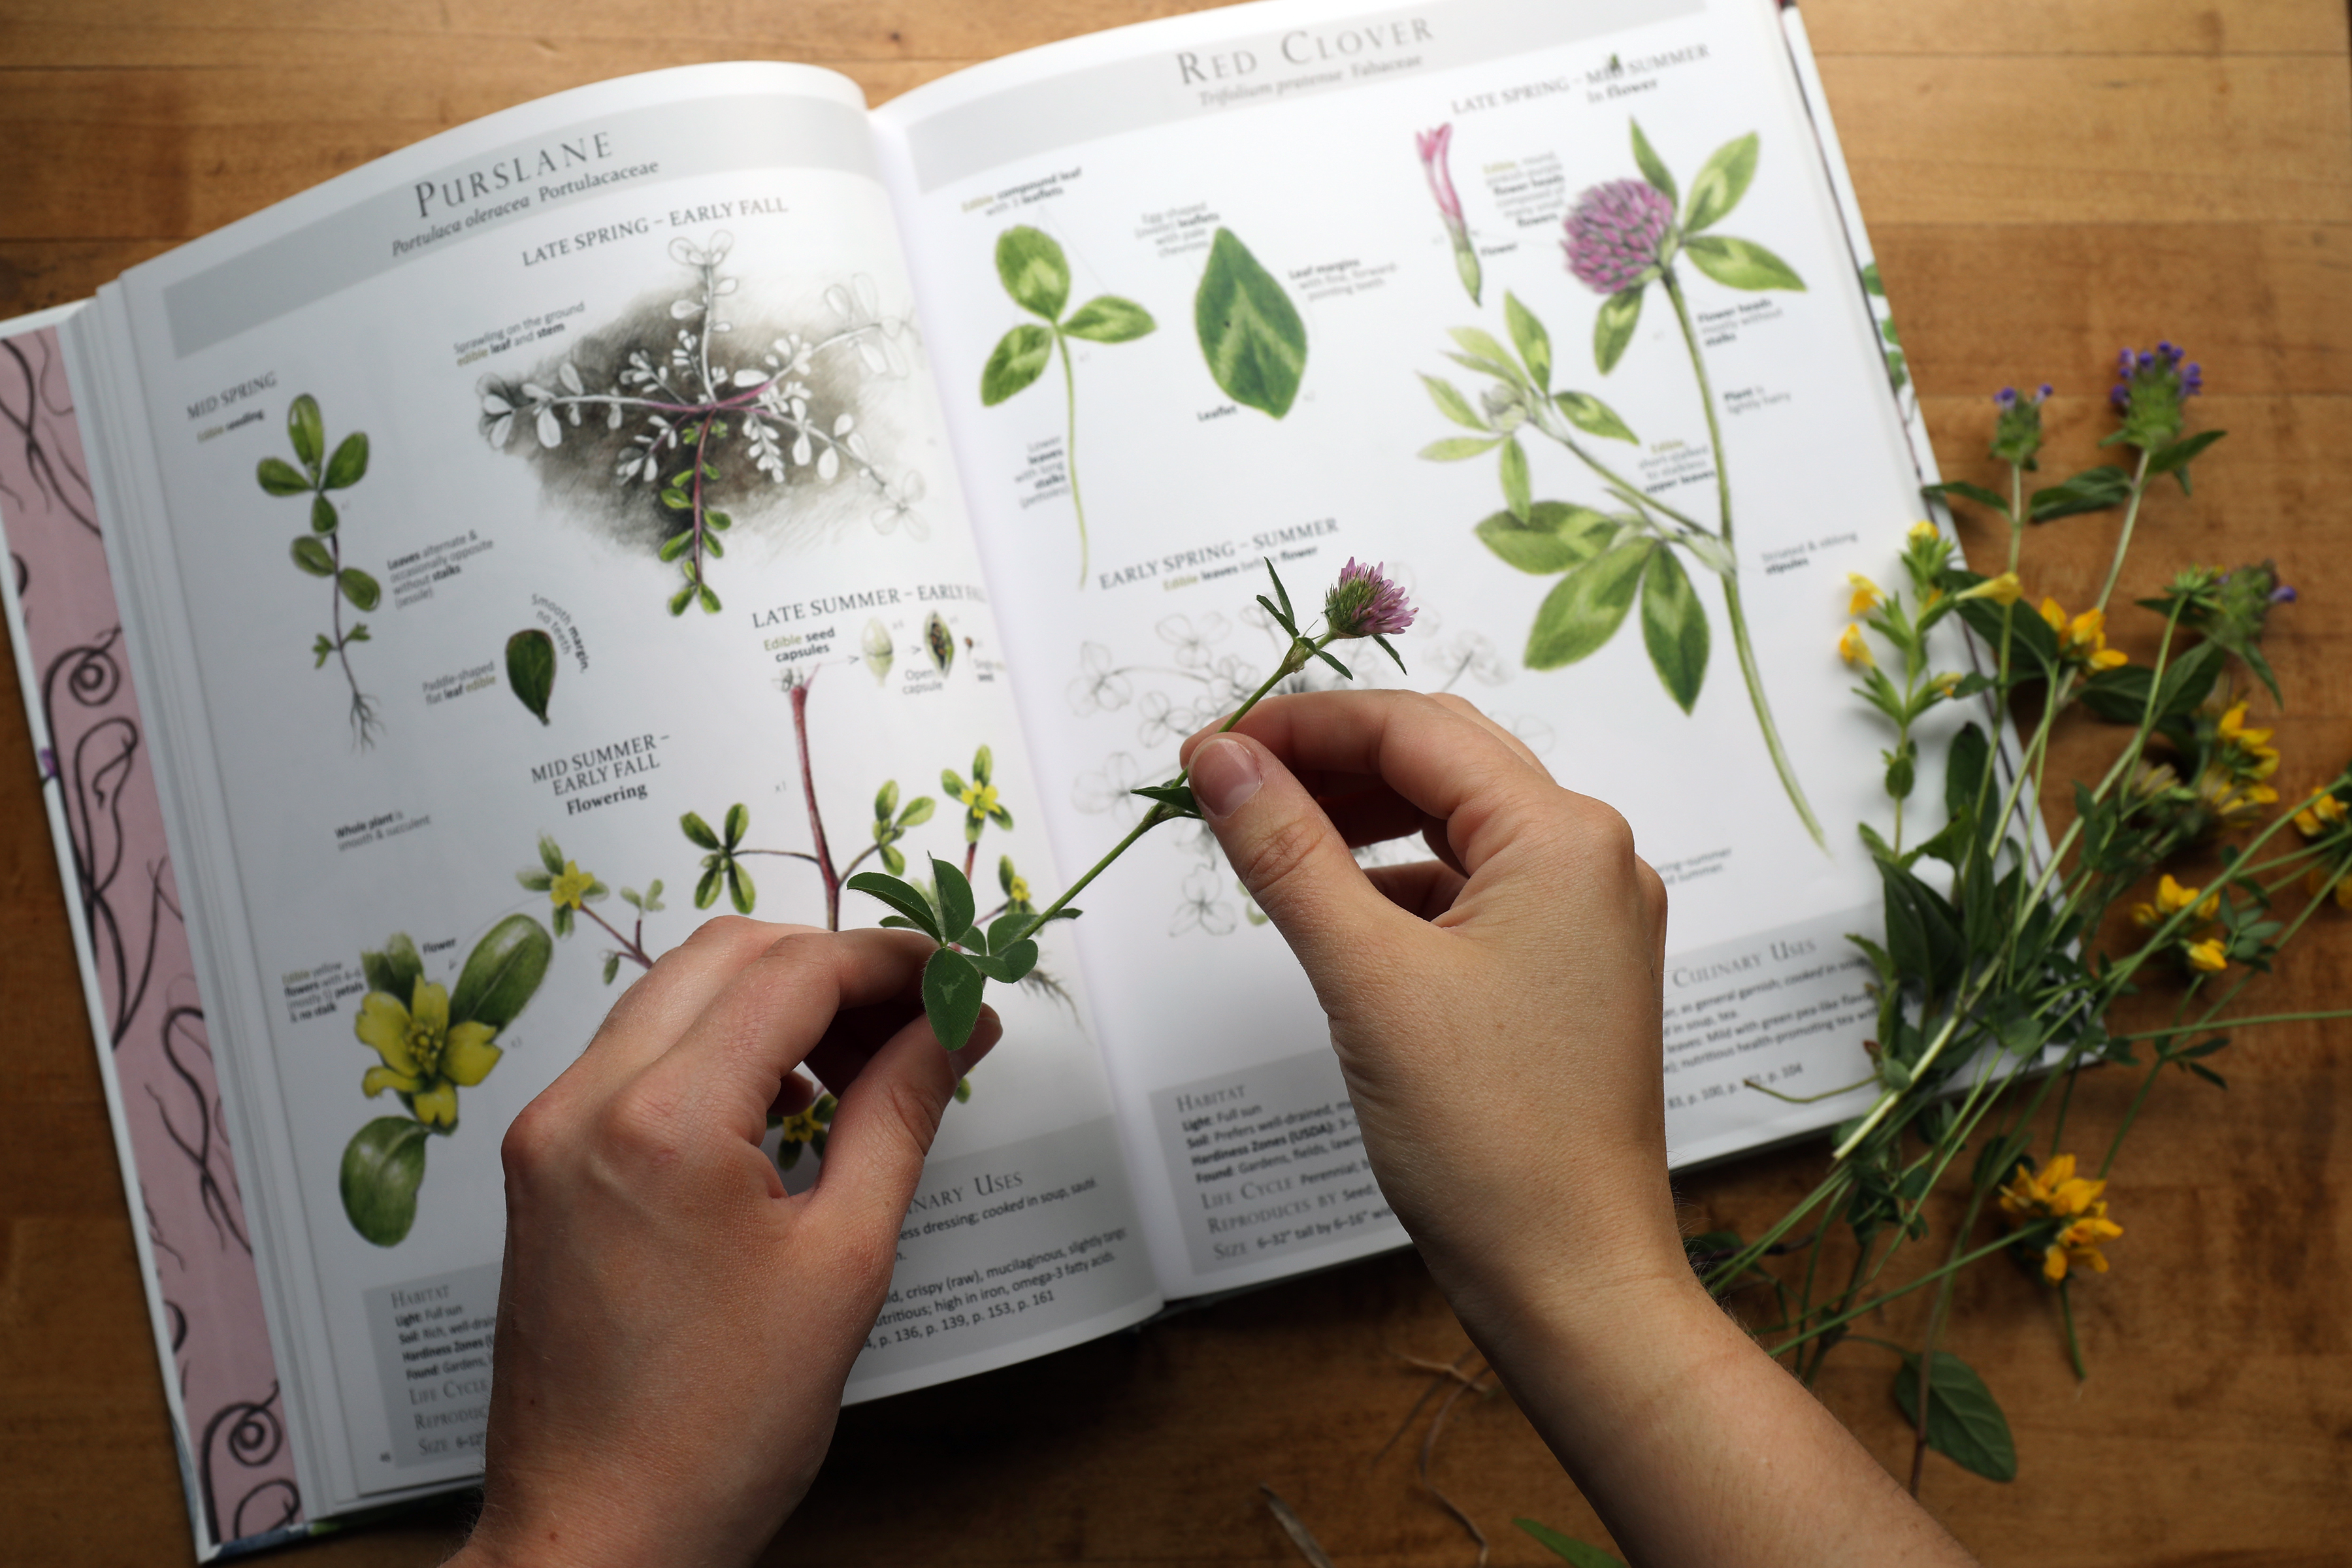 Using scientific encyclopedias, along with other forms of identification such as macro/microscopy, and HTPLC DNA modules, quality control labs can accurately label herbal products with the correct botanical names.